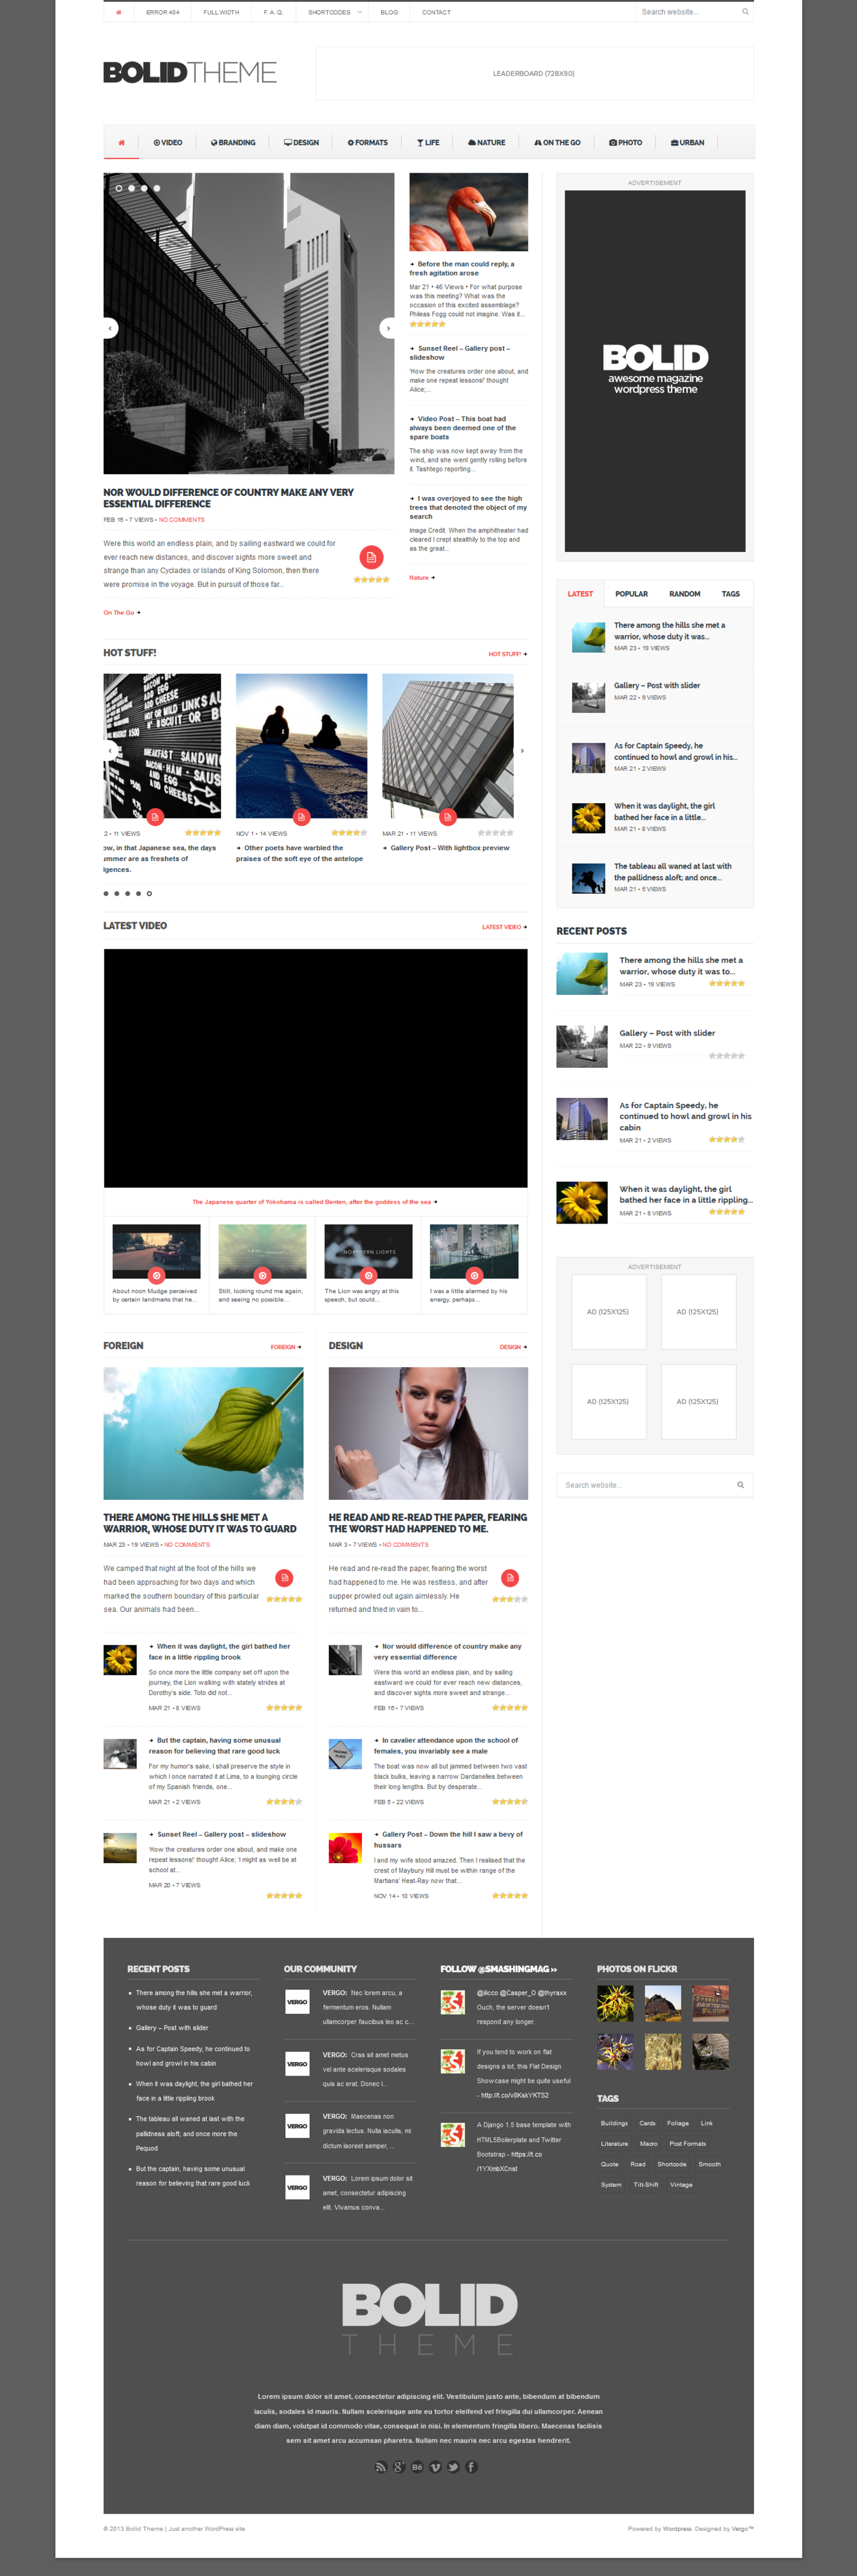 Bolid - Responsive News, Magazine and Blog Theme